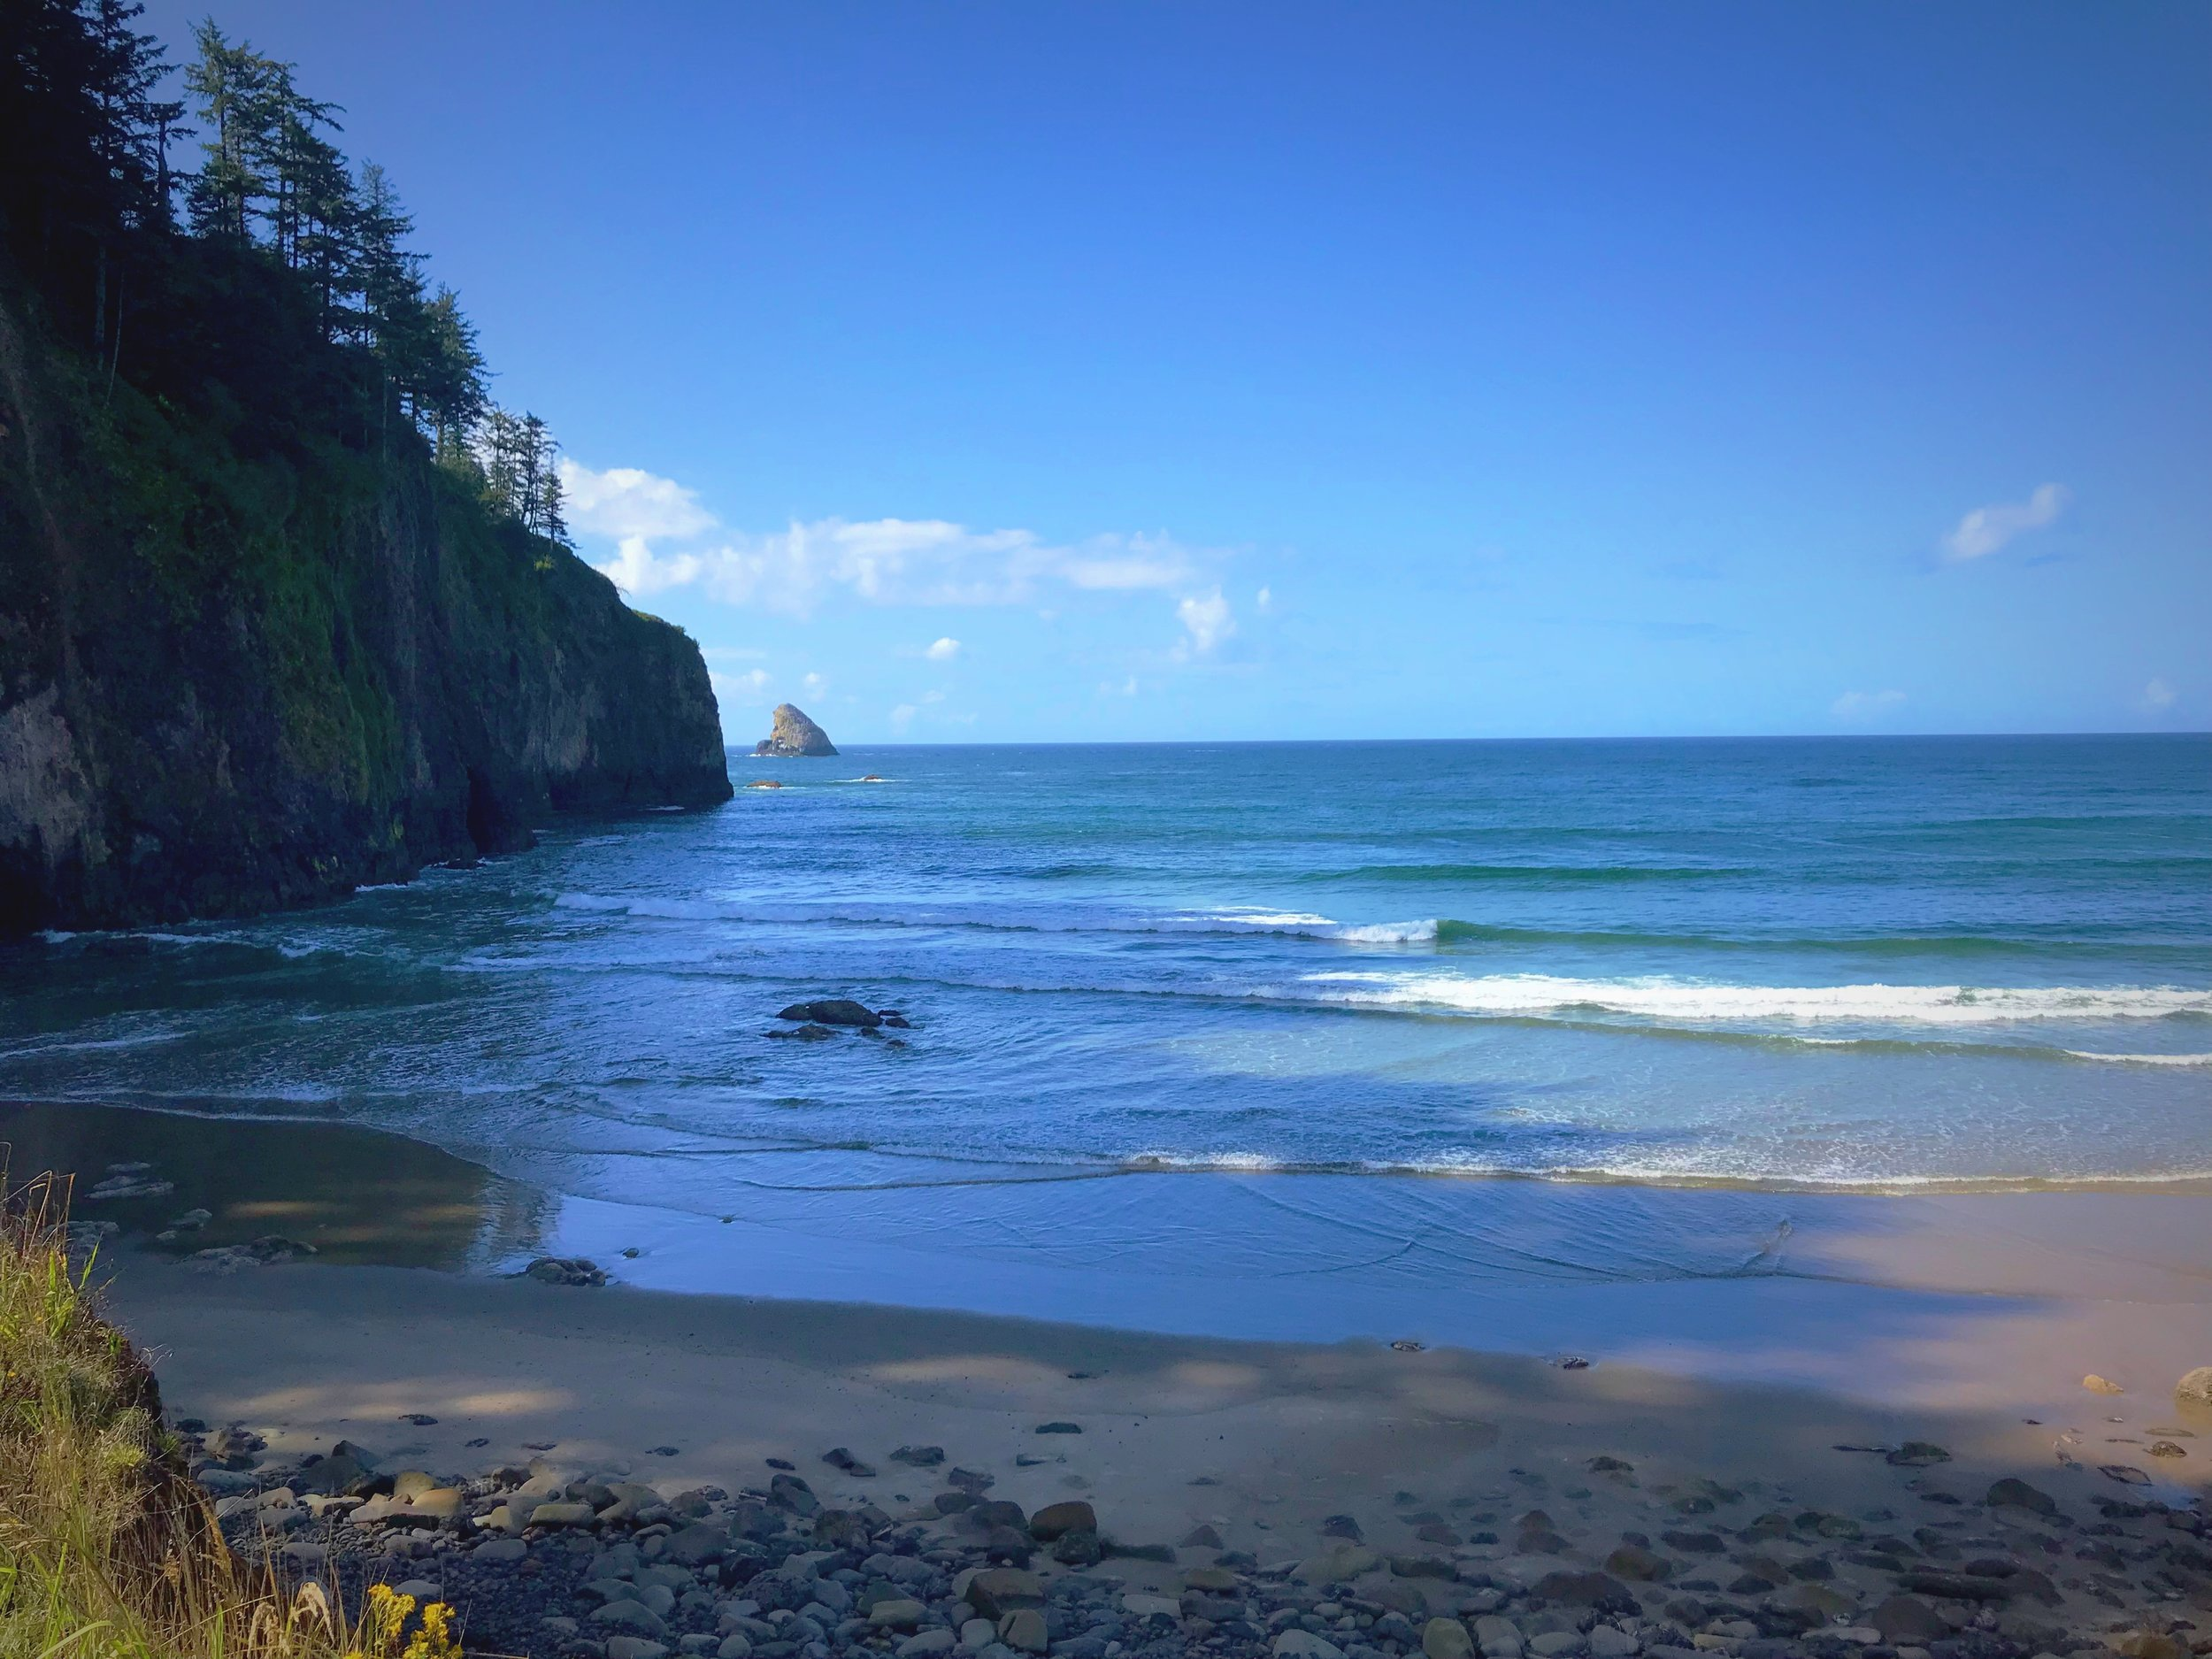 The rocky headland and sea stacks at Cape Meares State Park on the Oregon Coast.